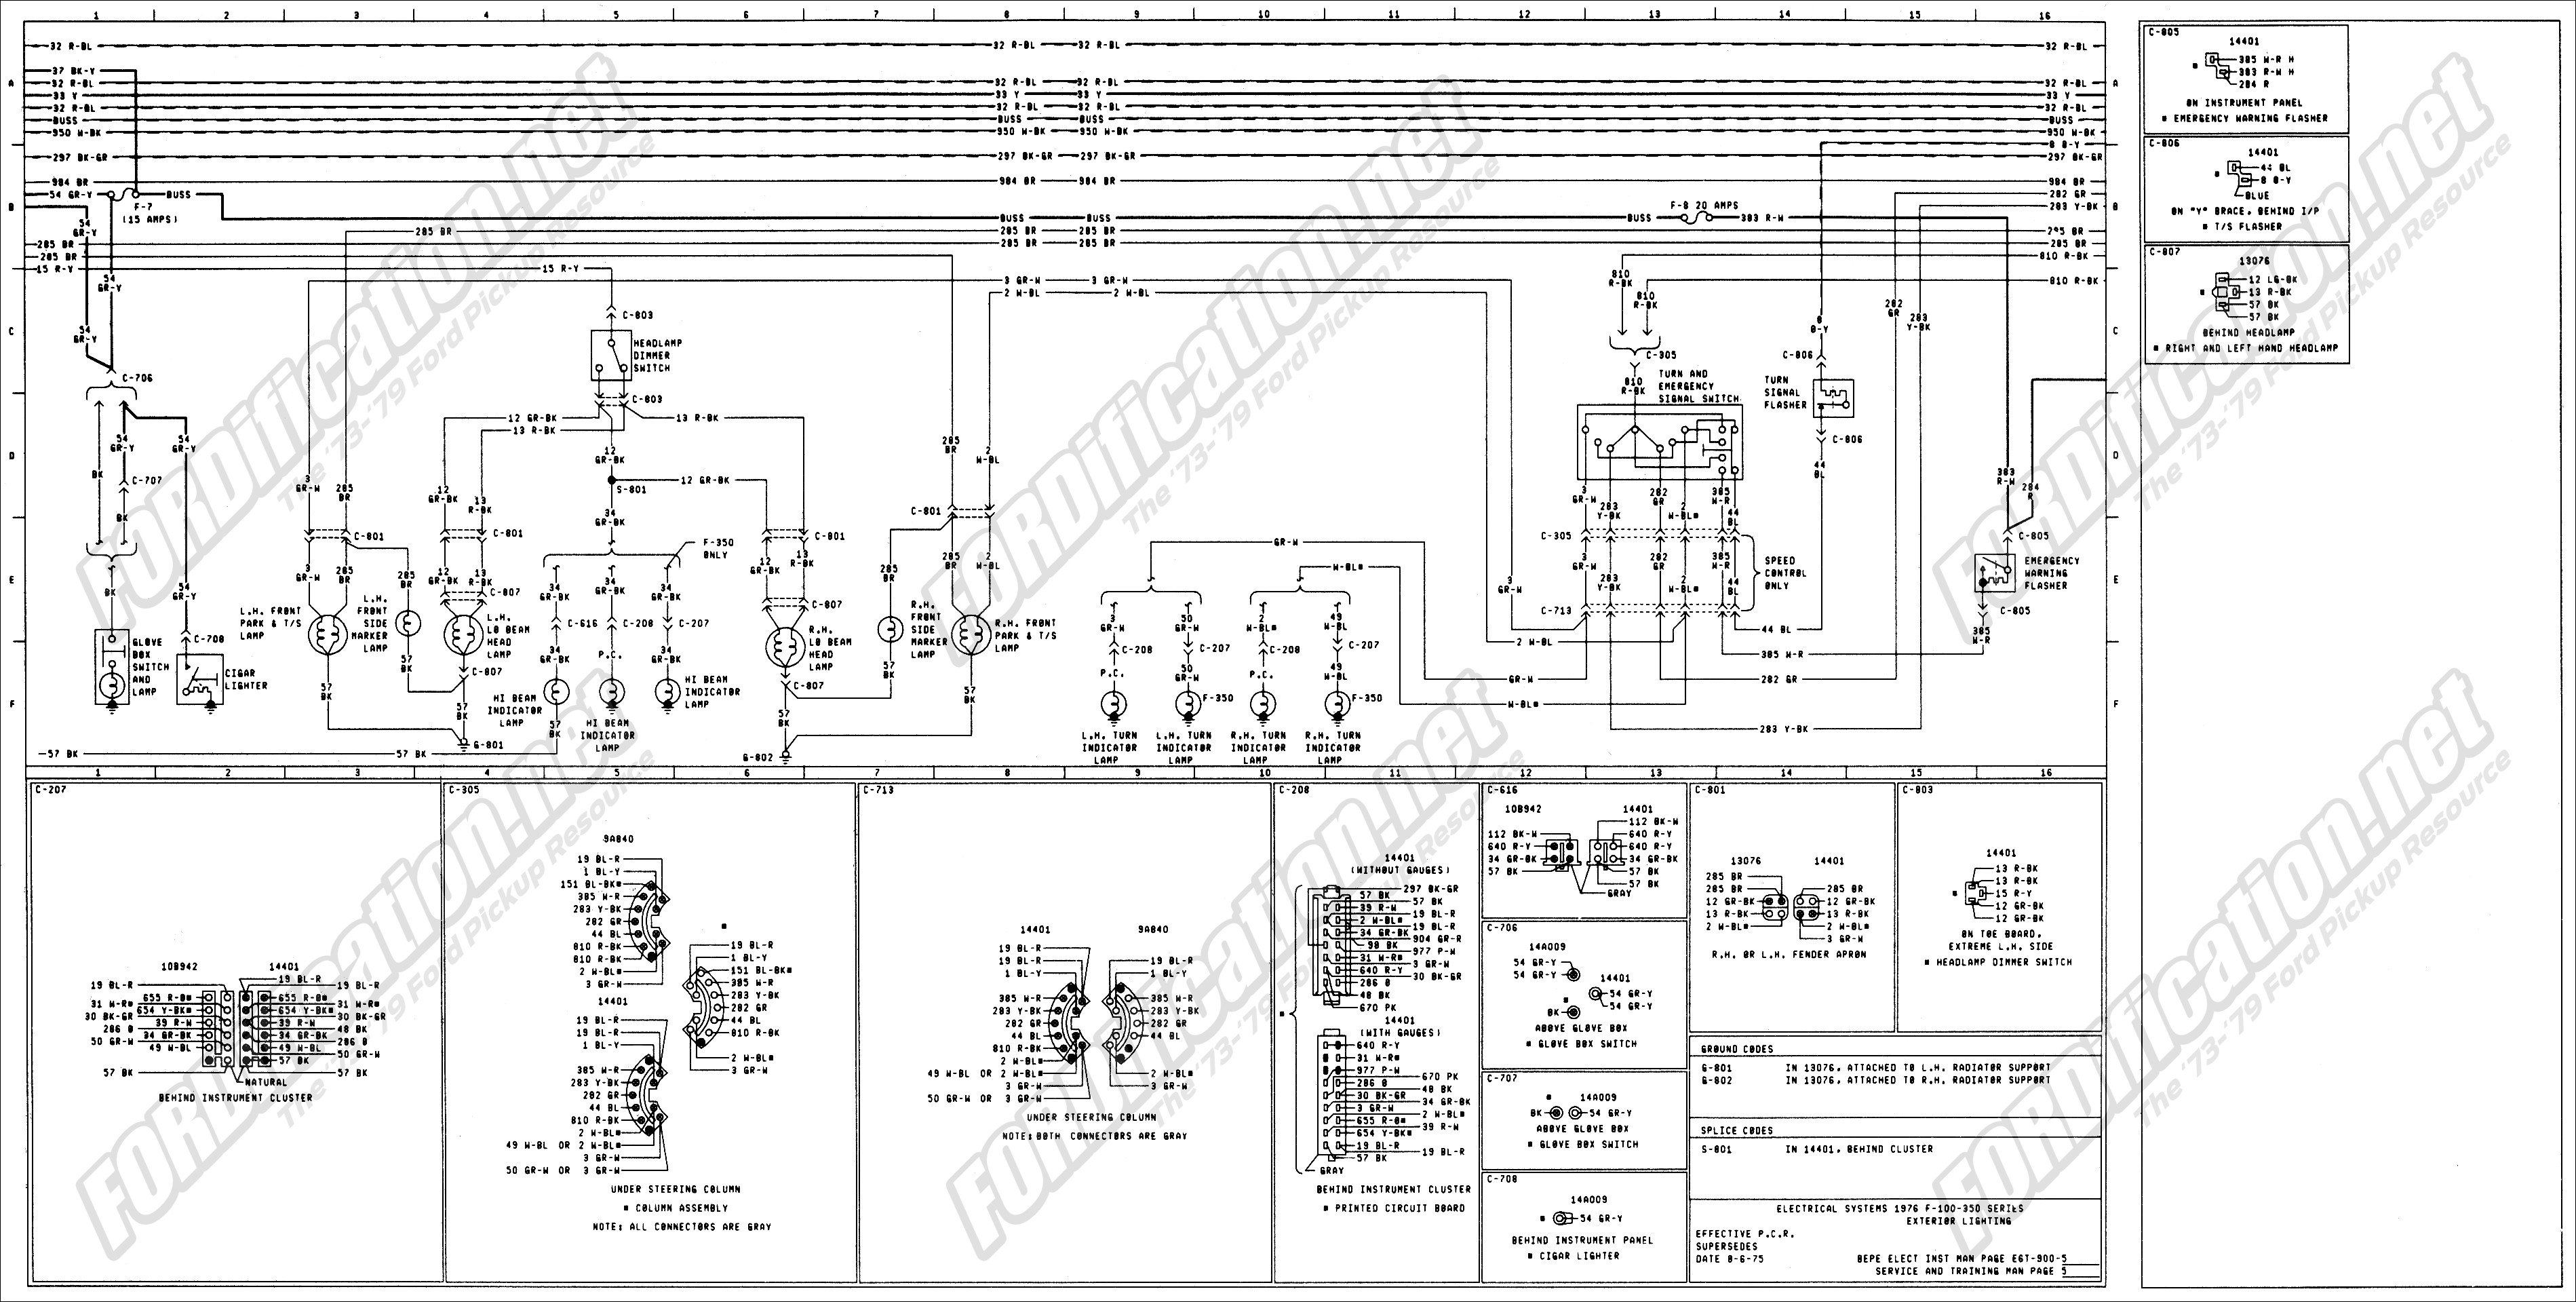 2000 ford F150 V6 Engine Diagram 1973 1979 ford Truck Wiring Diagrams &  Schematics fordification Of